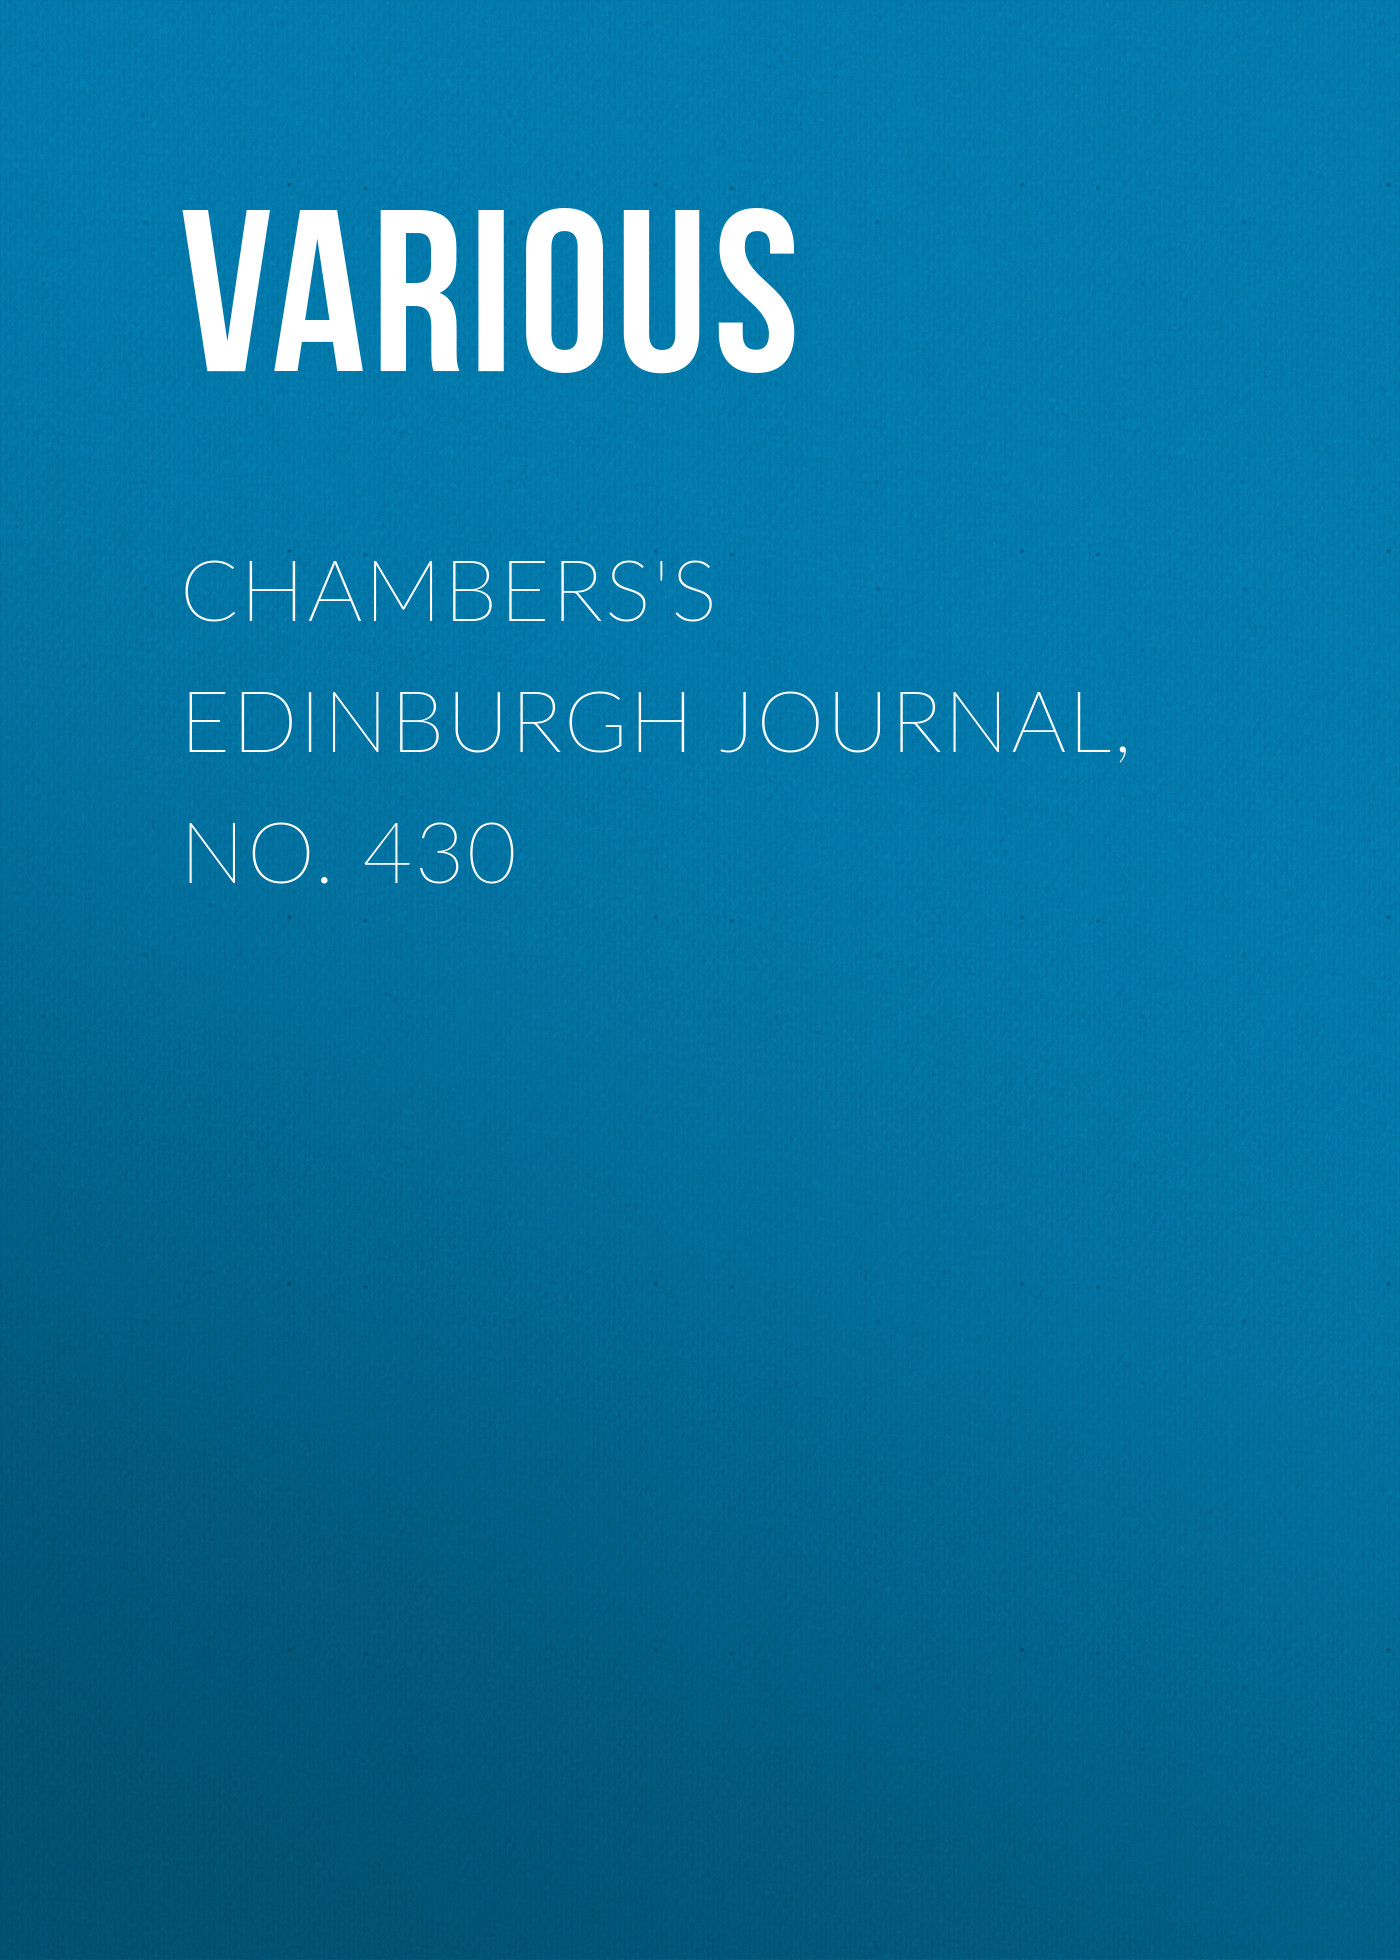 Various Chambers's Edinburgh Journal, No. 430